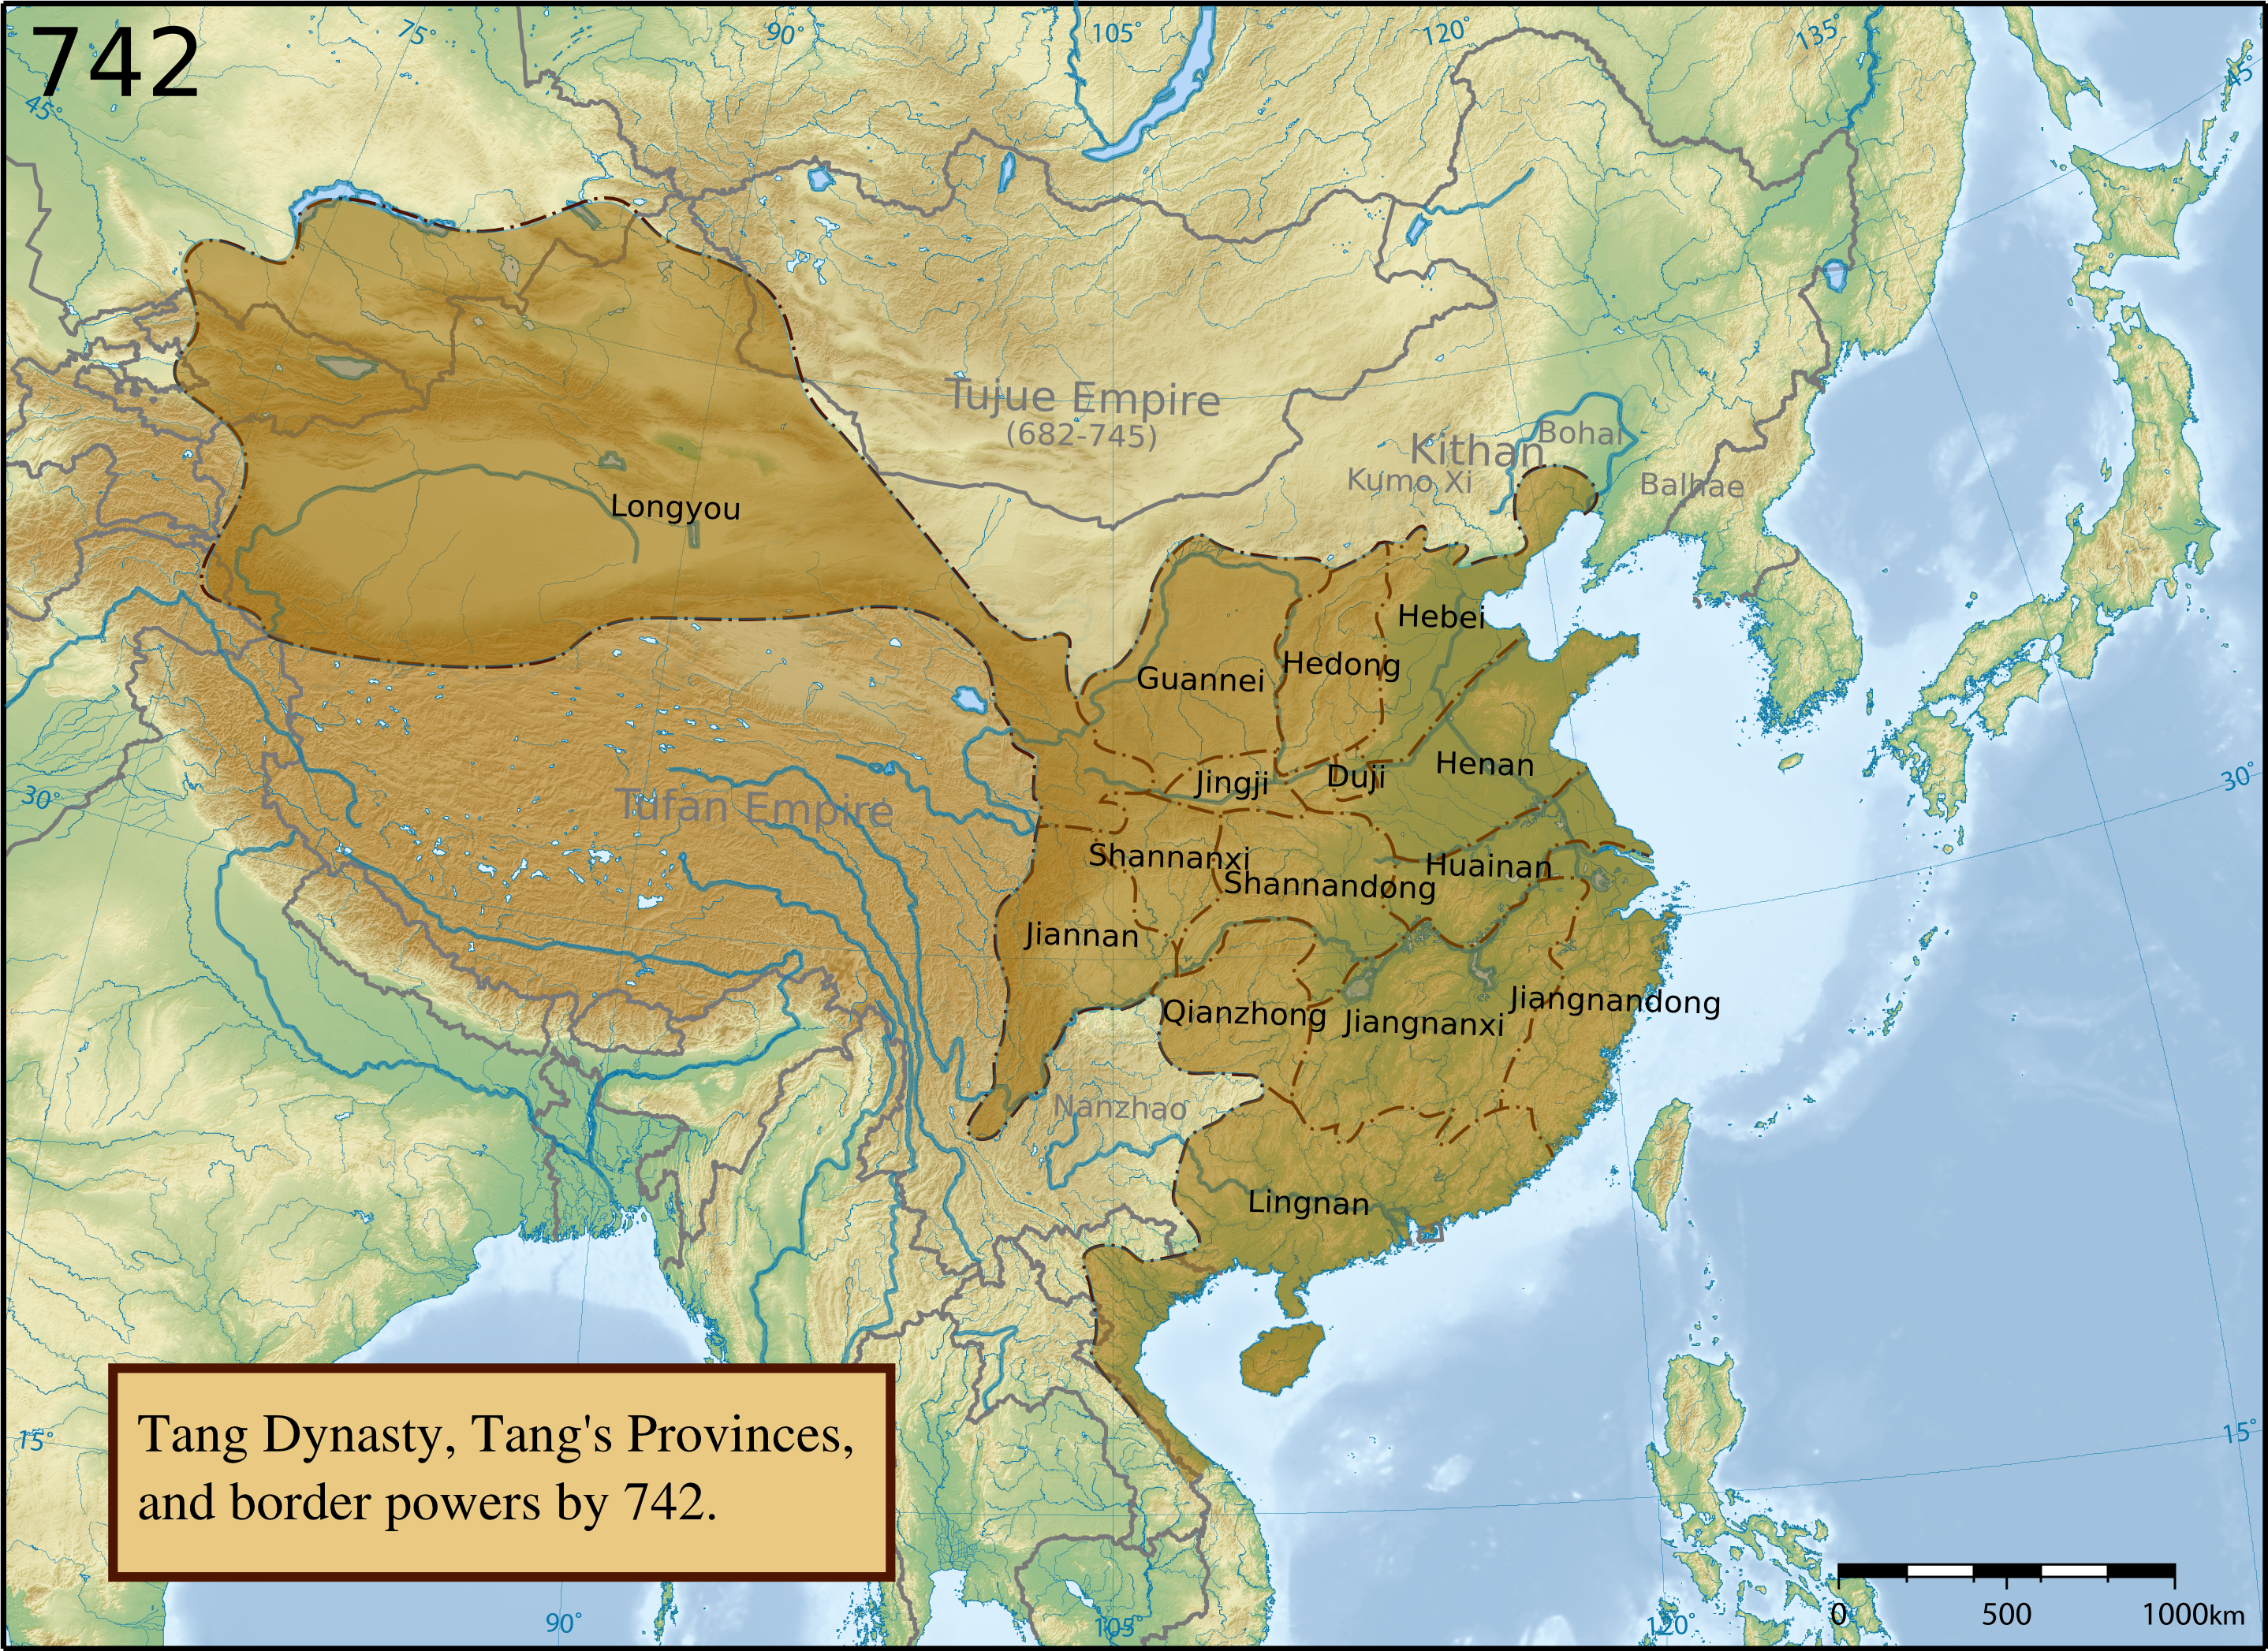 Map of the Tang Dynasty labeled with thirteen of Tang's provinces.